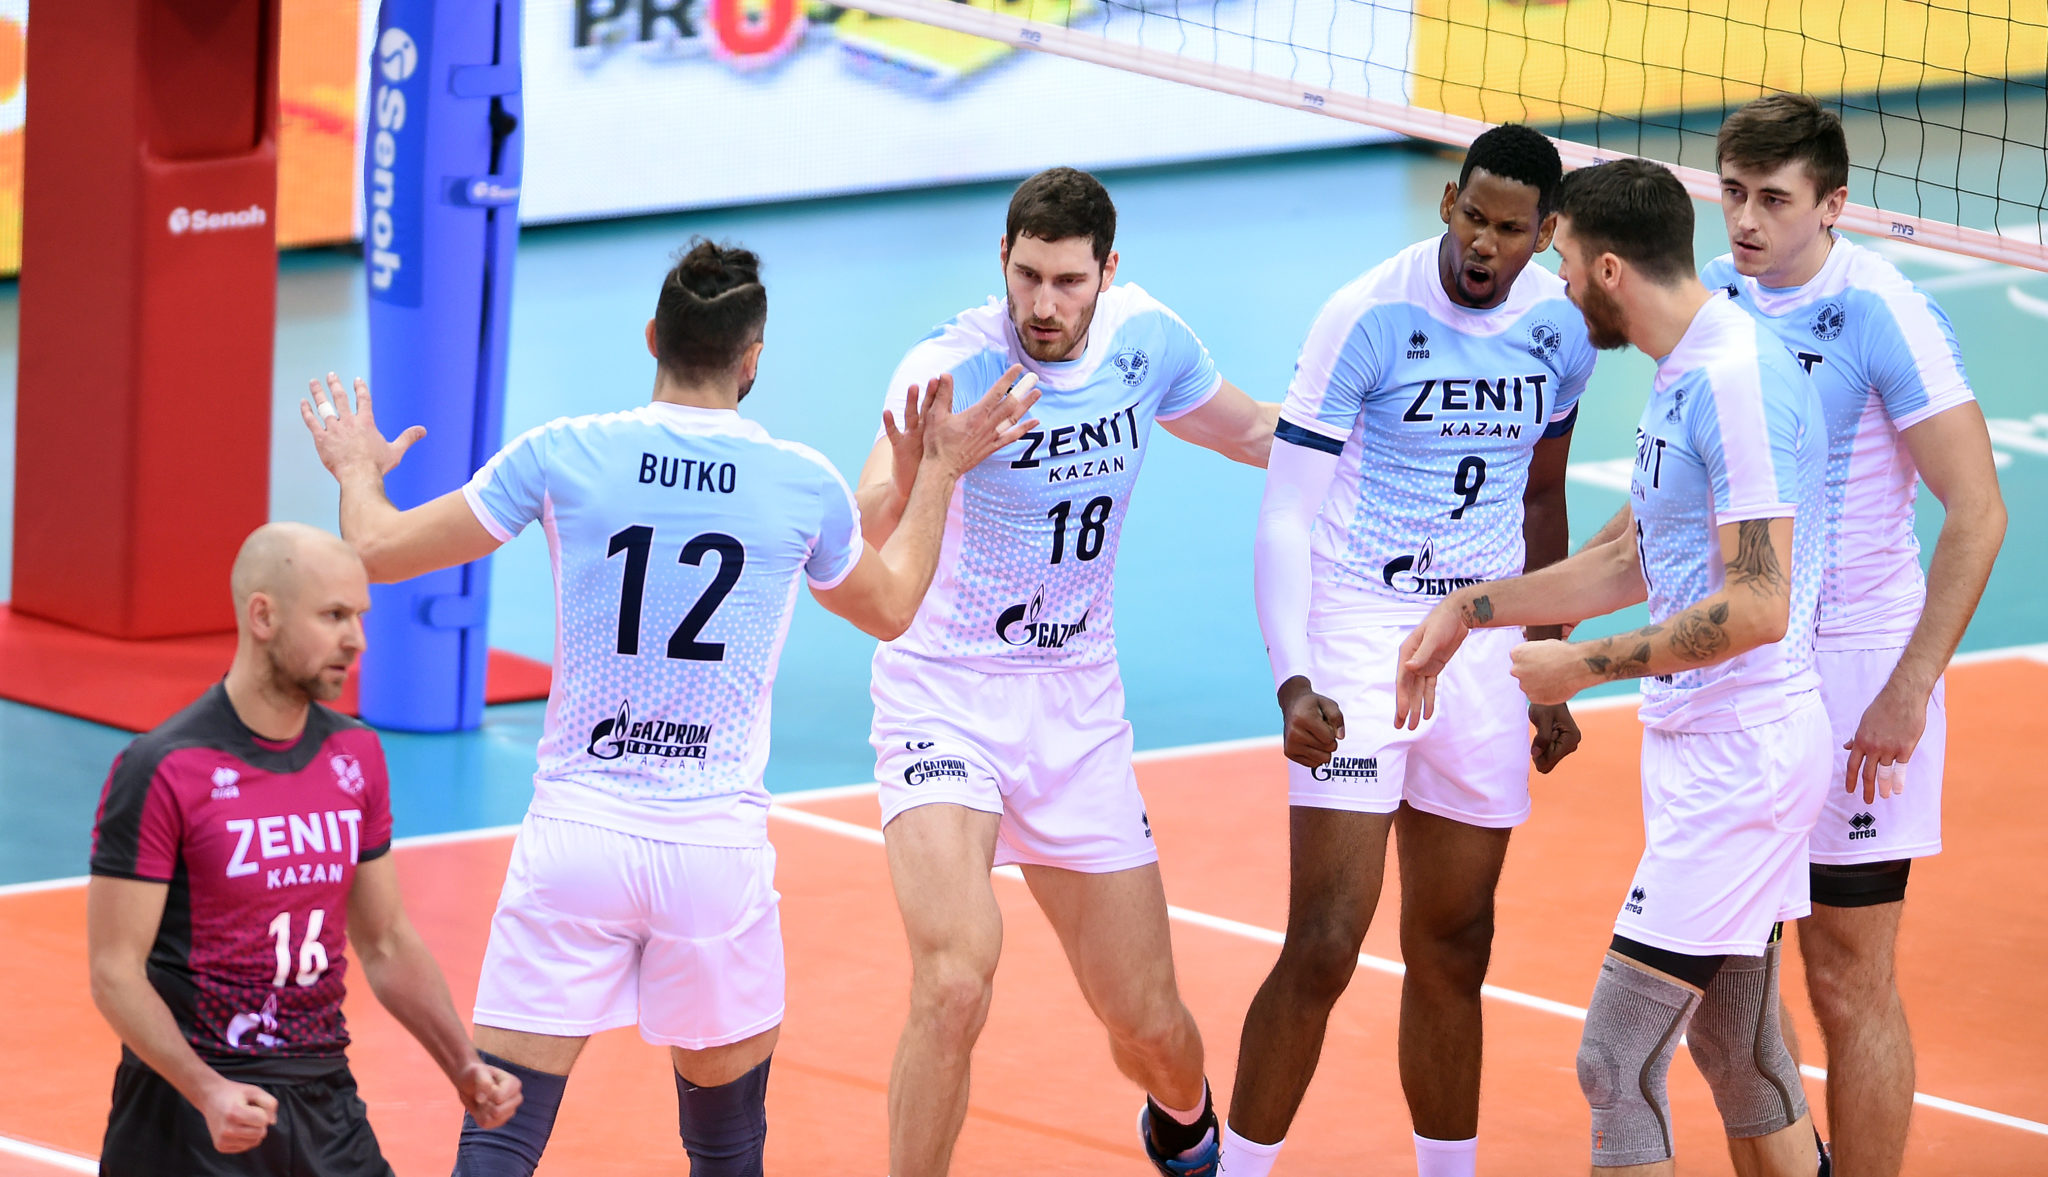 Zenit Kazan And Lube Civitanova To Face Off In Fivb Club Wch Finals